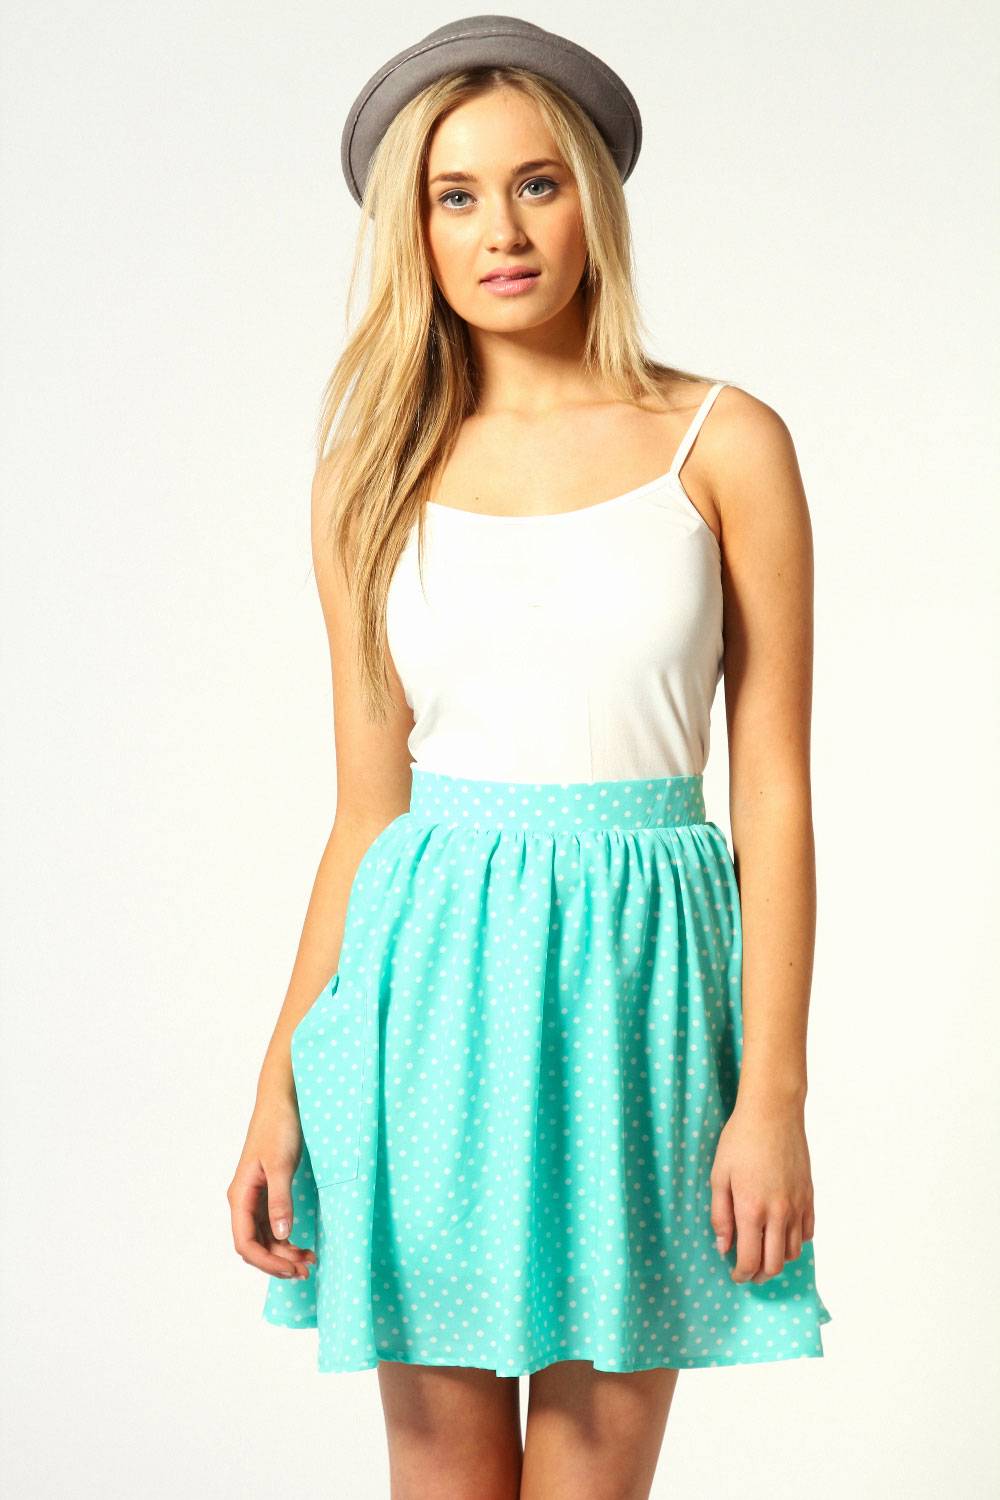 Danny High Waist Spotty Chiffon Skater Skirt | eBay